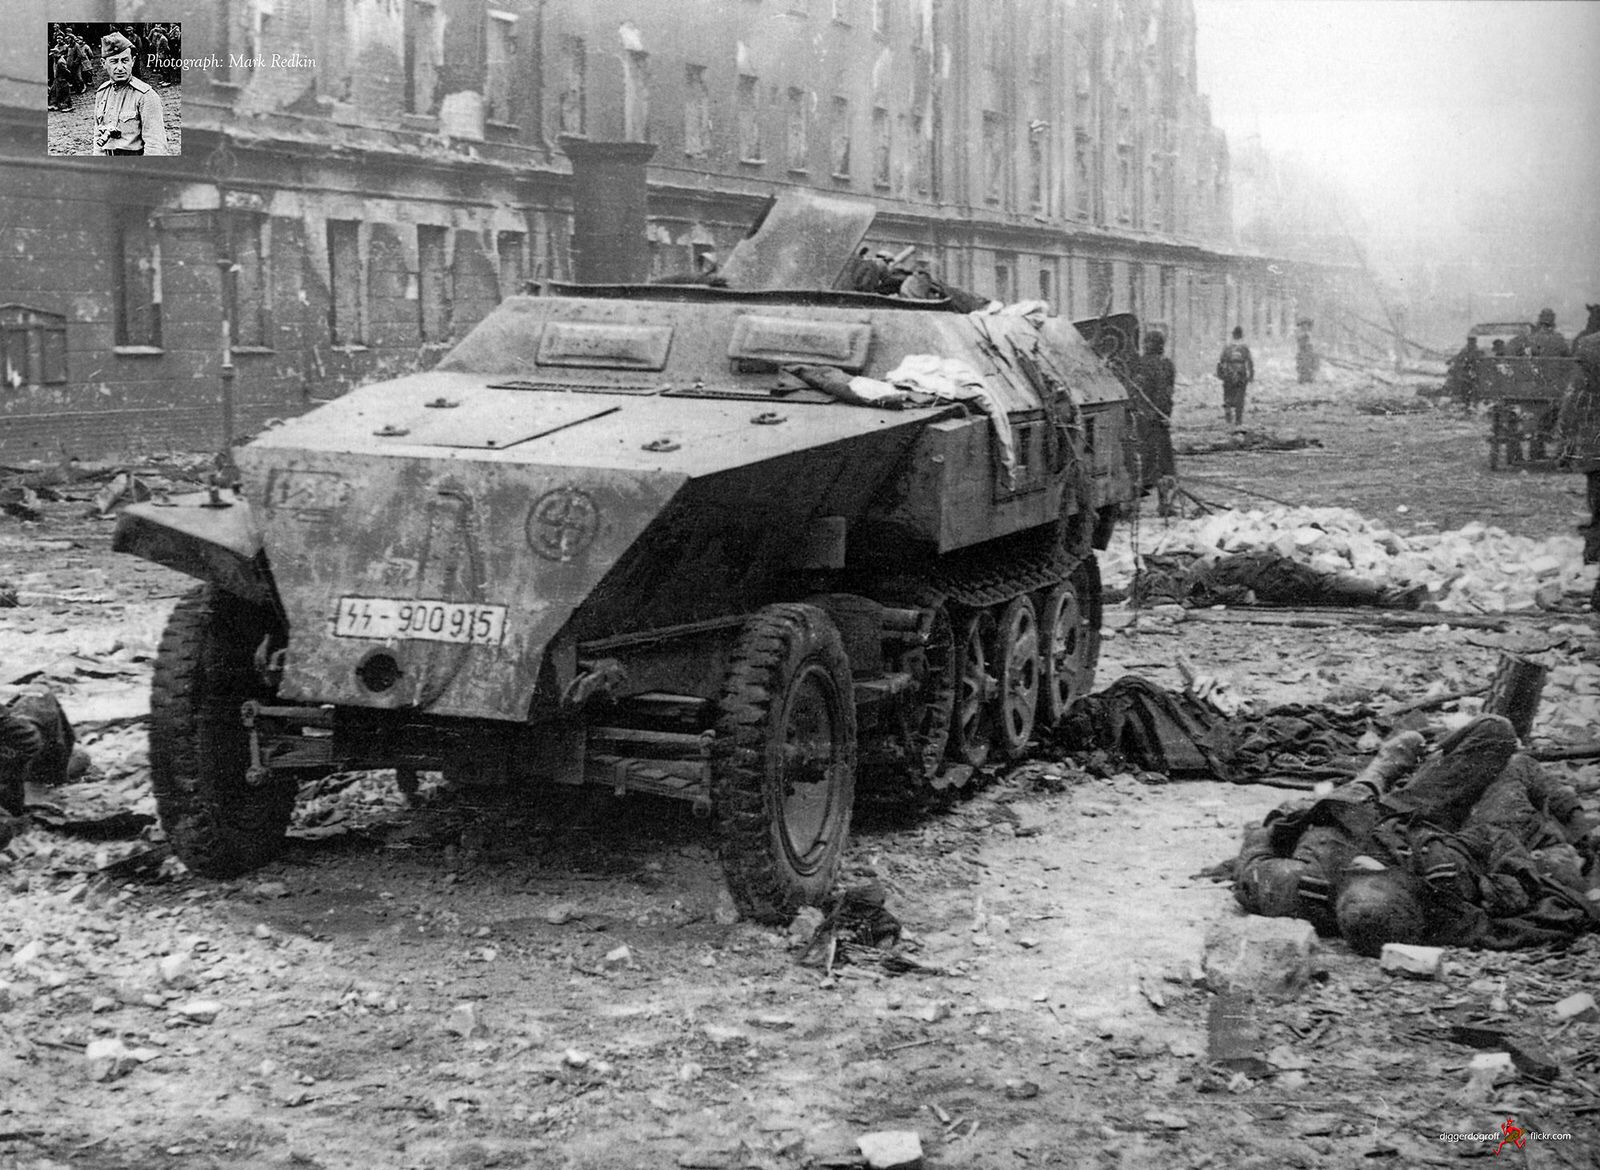 11 ss panzergrenadier div sd kfz 250 ausf b knocked out on berlin 39 s armored cars half tracks. Black Bedroom Furniture Sets. Home Design Ideas